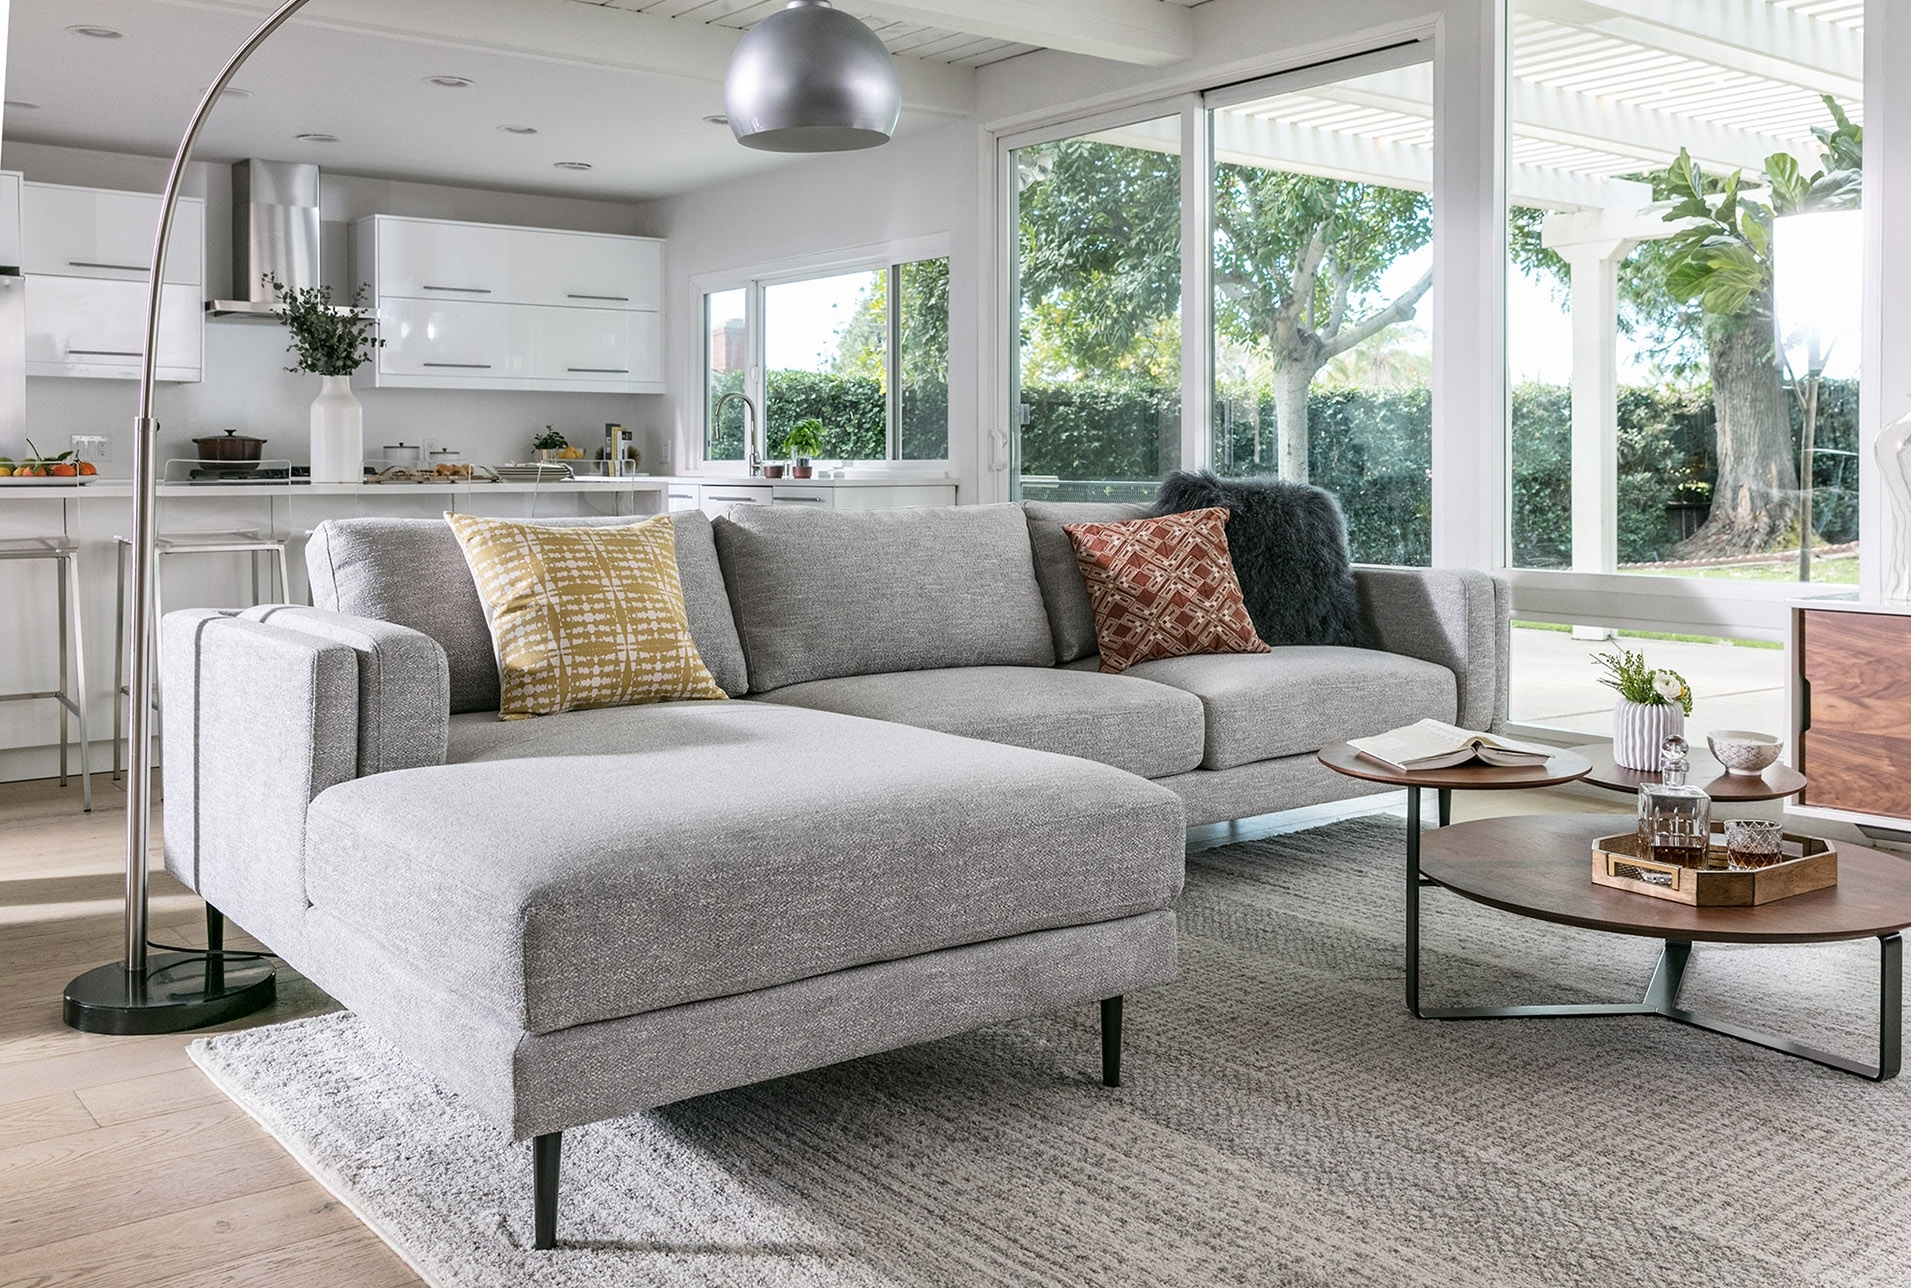 Aquarius Light Grey 2 Piece Sectional W/laf Chaise | Products intended for Aquarius Light Grey 2 Piece Sectionals With Laf Chaise (Image 8 of 30)